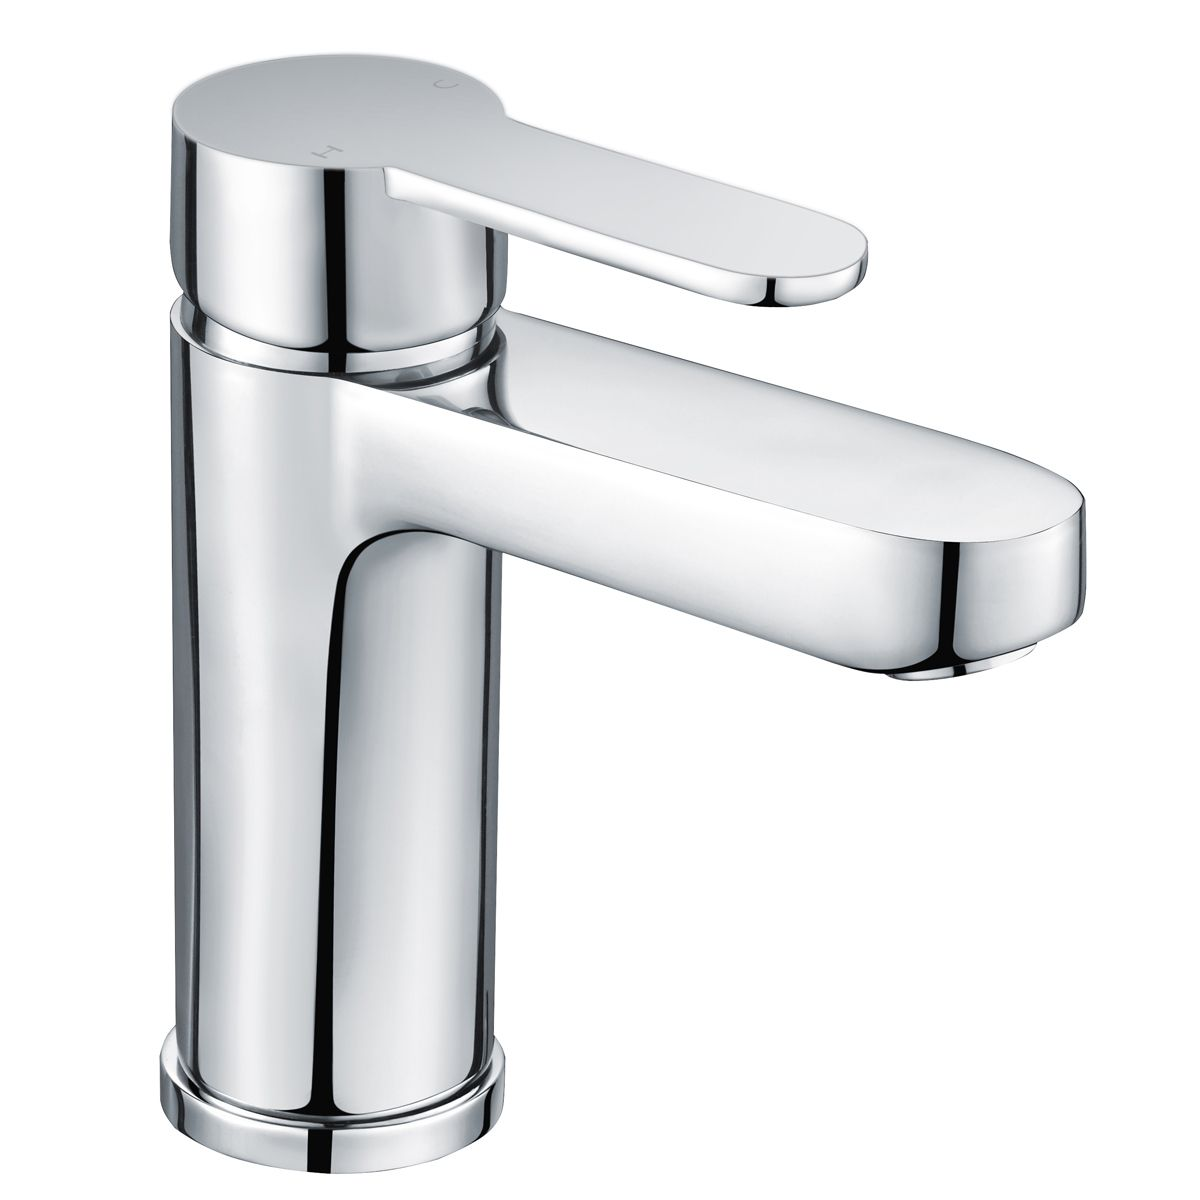 RAK Morning Chrome Mono Basin Mixer Tap with Waste